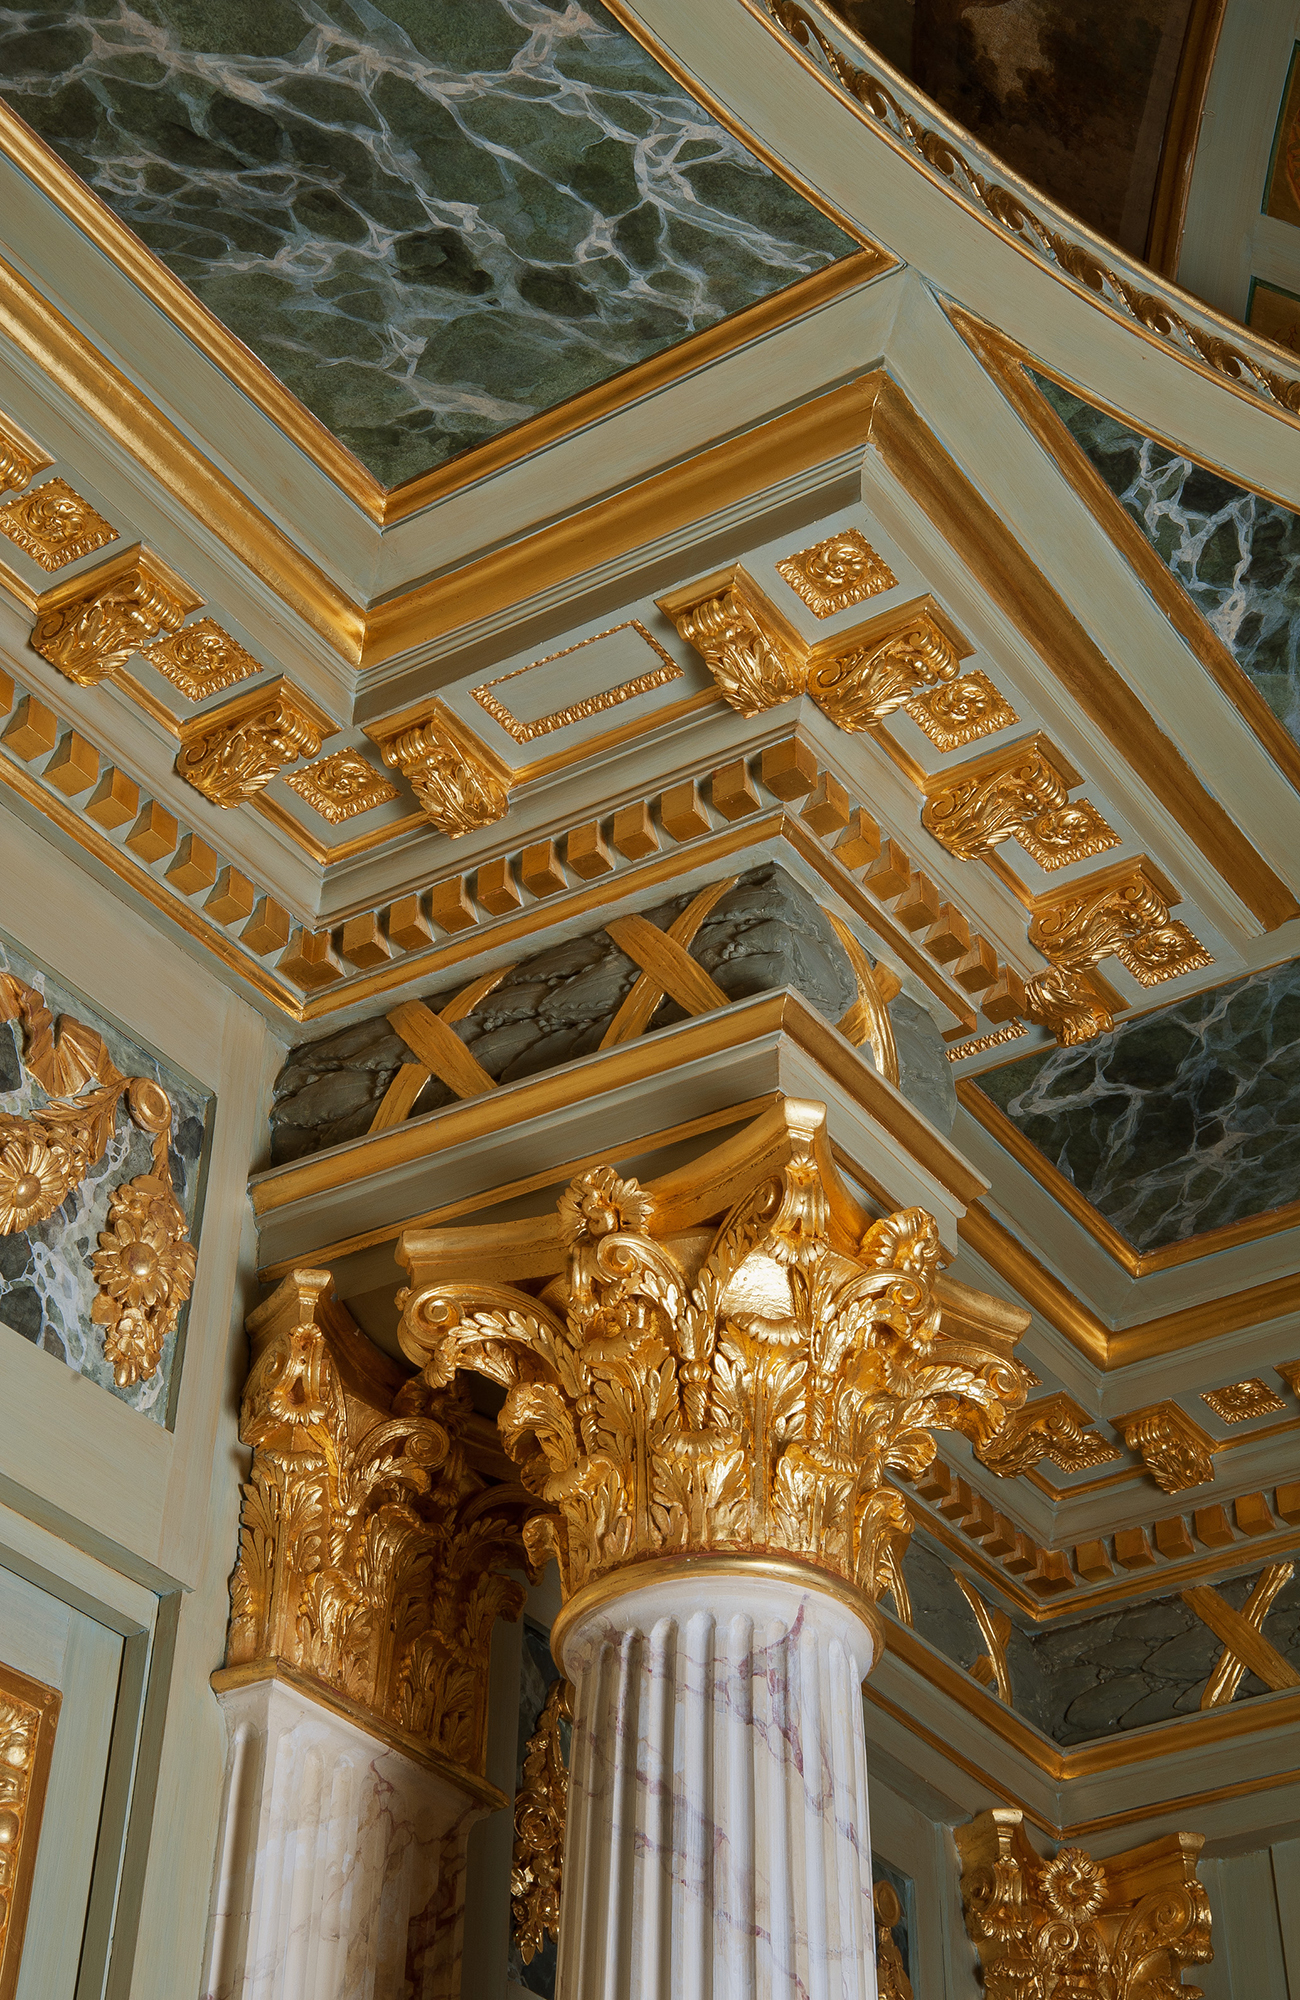 Carved stone capital and cornice, white paint and imitation gray marble finish, fine gilding